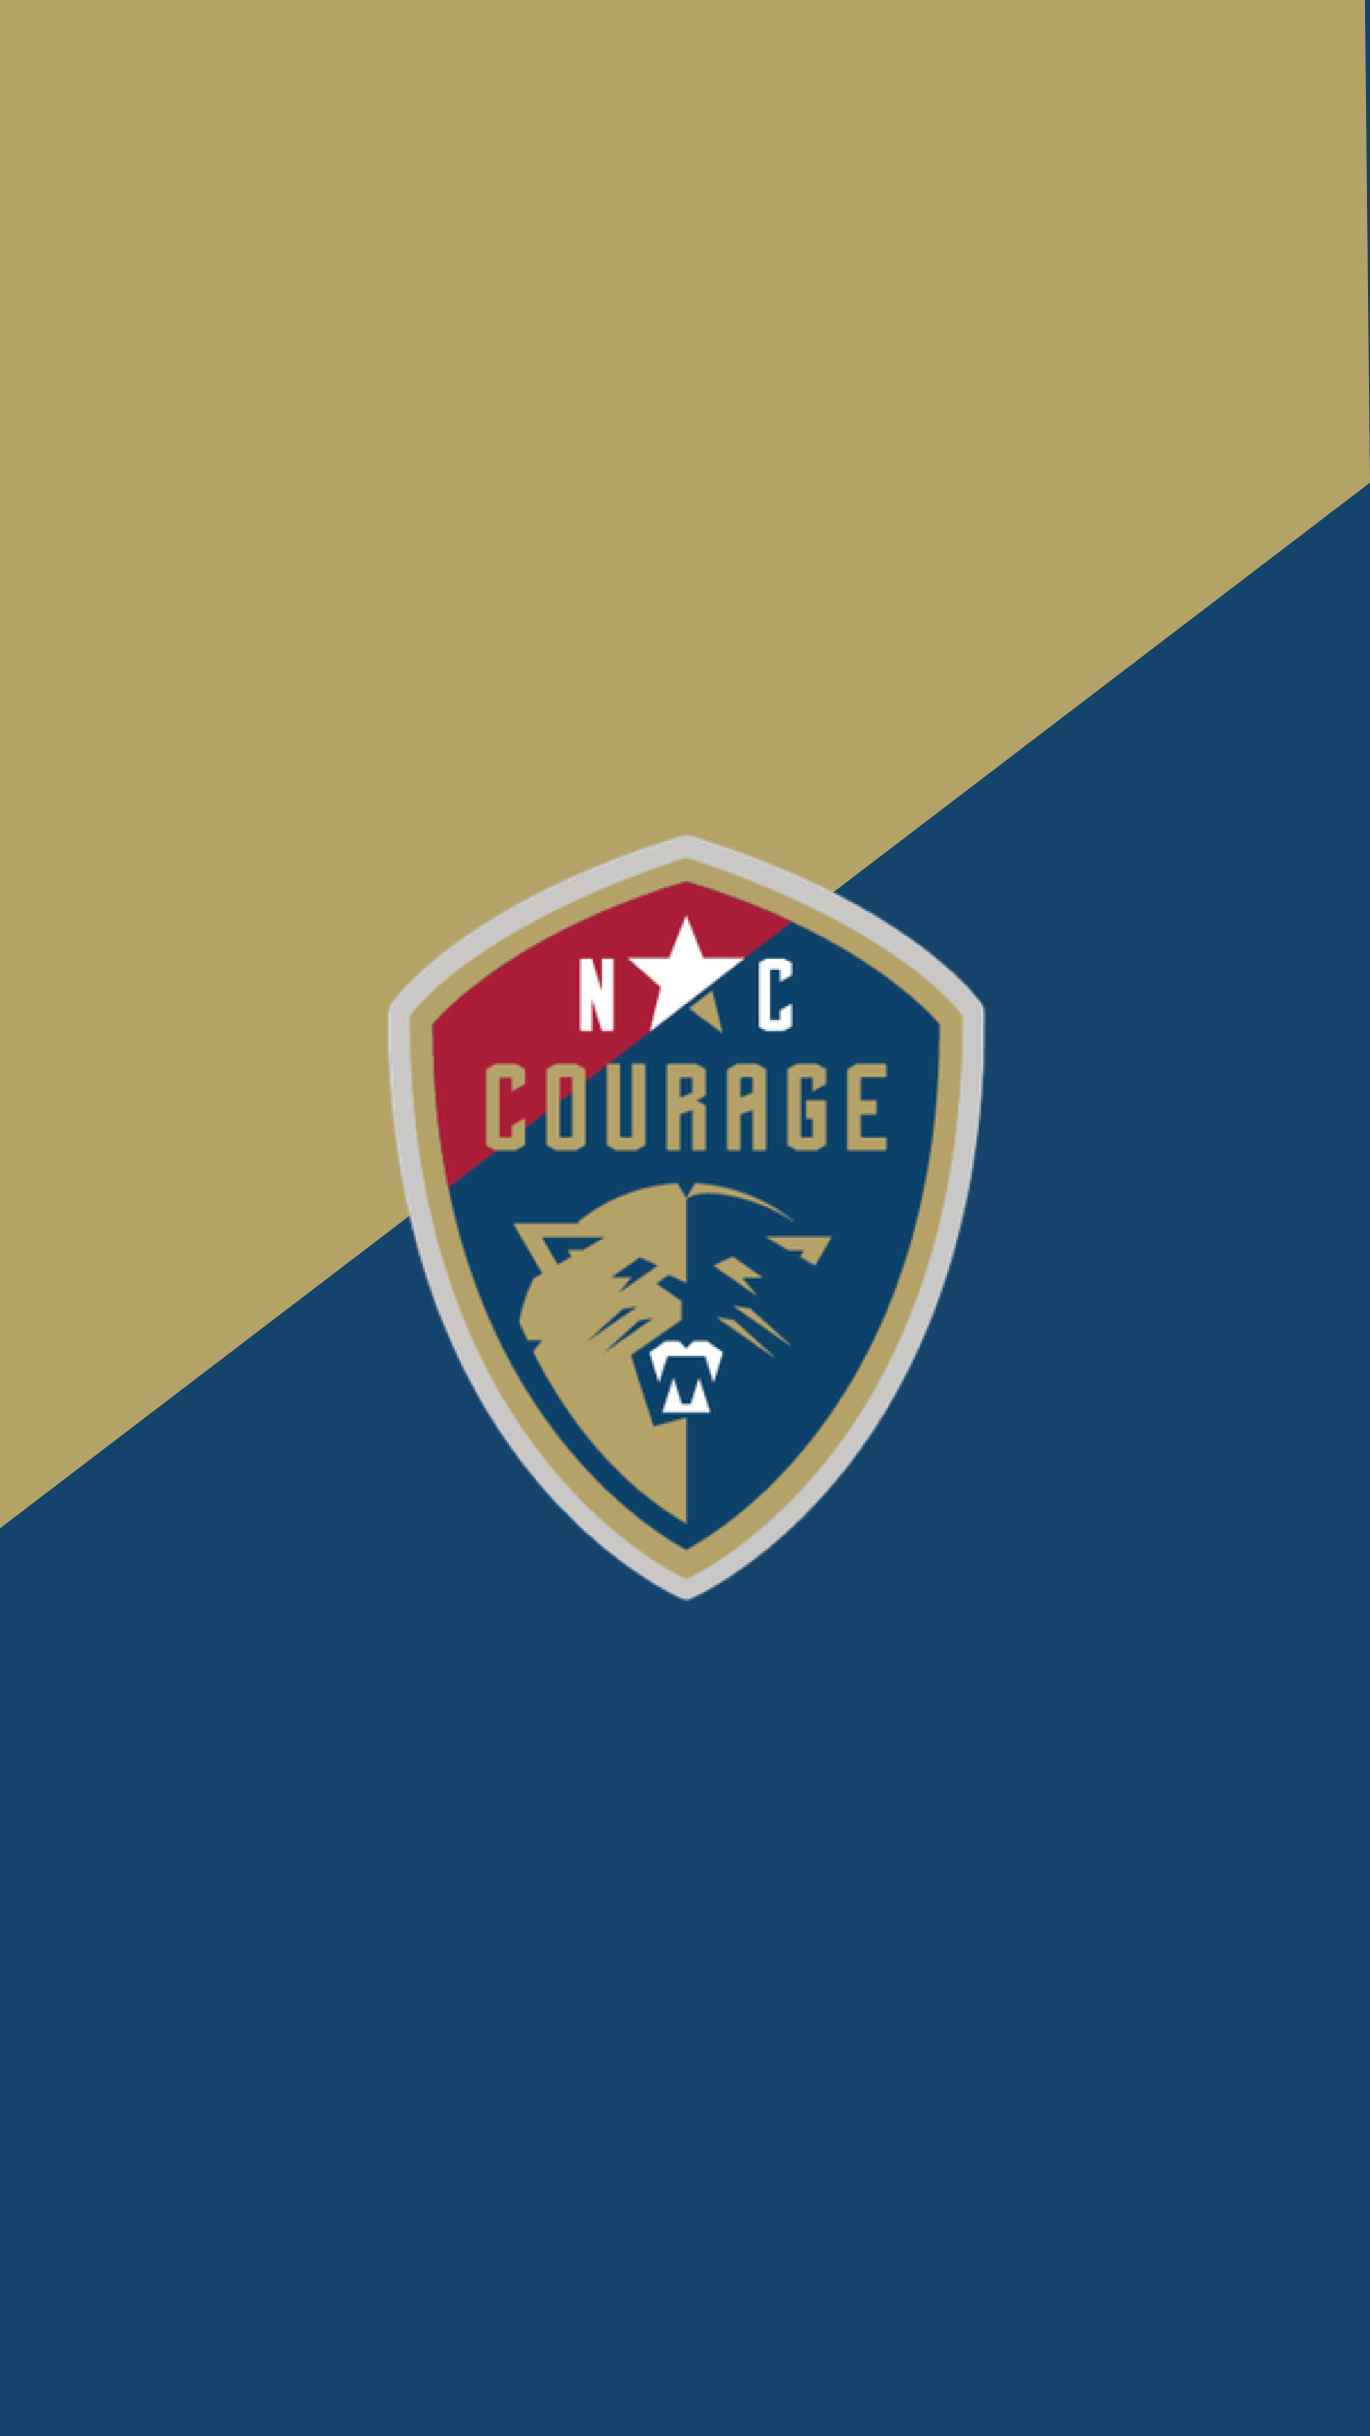 NIKE-NWSL-IG-STORY-09.png